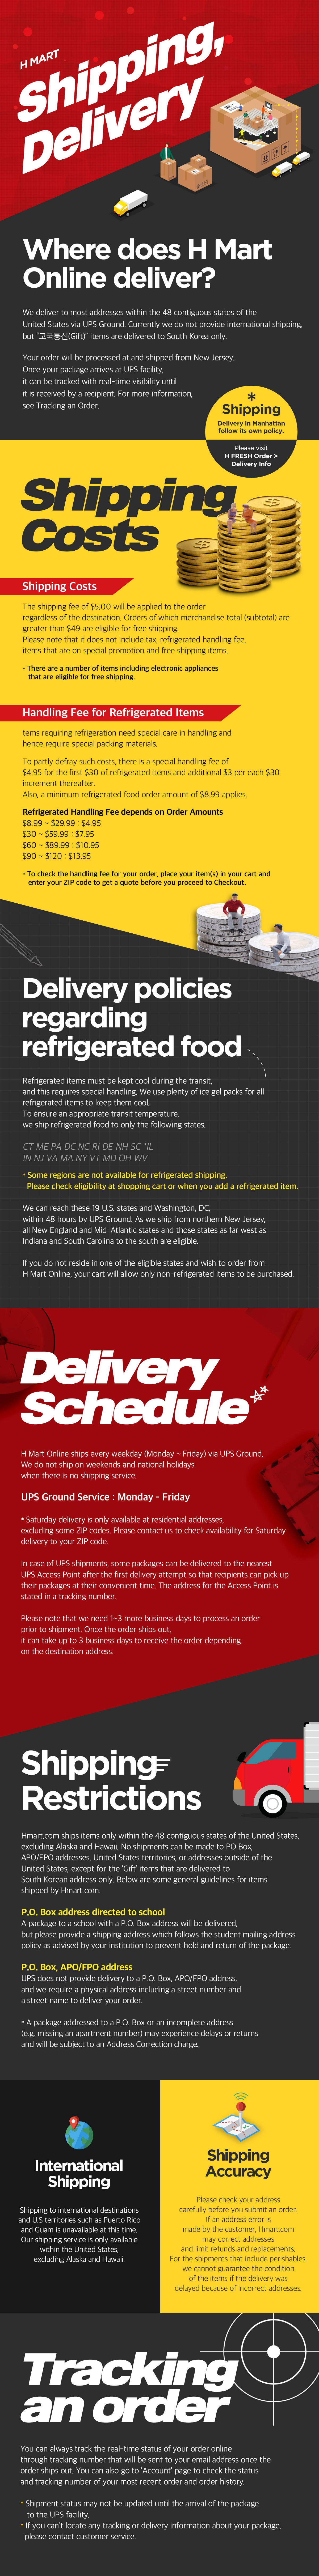 Shipping & Delivery Info